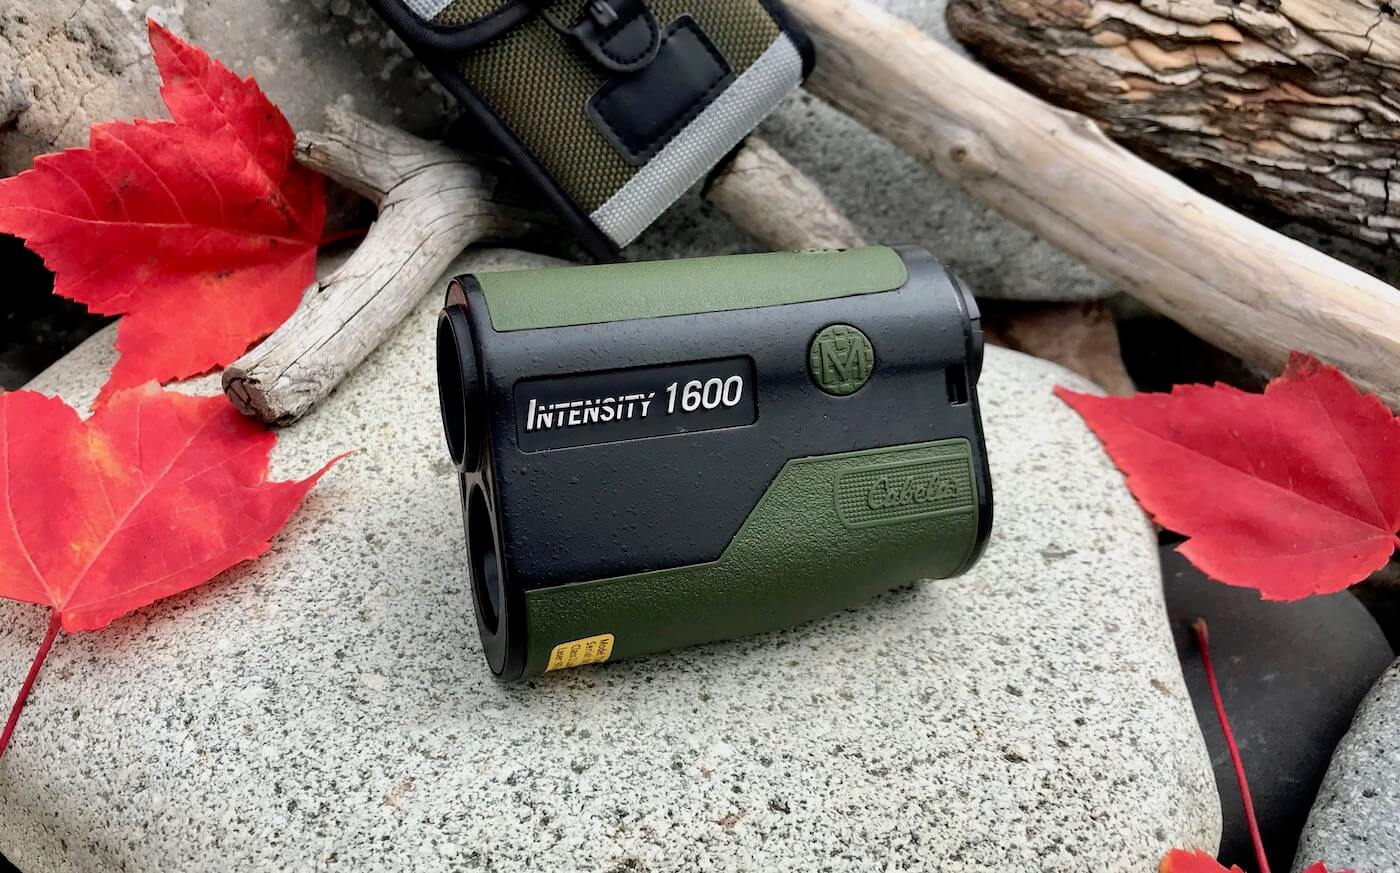 This photo shows the Cabela's Intensity 1600 Laser Rangefinder with its included carry case.